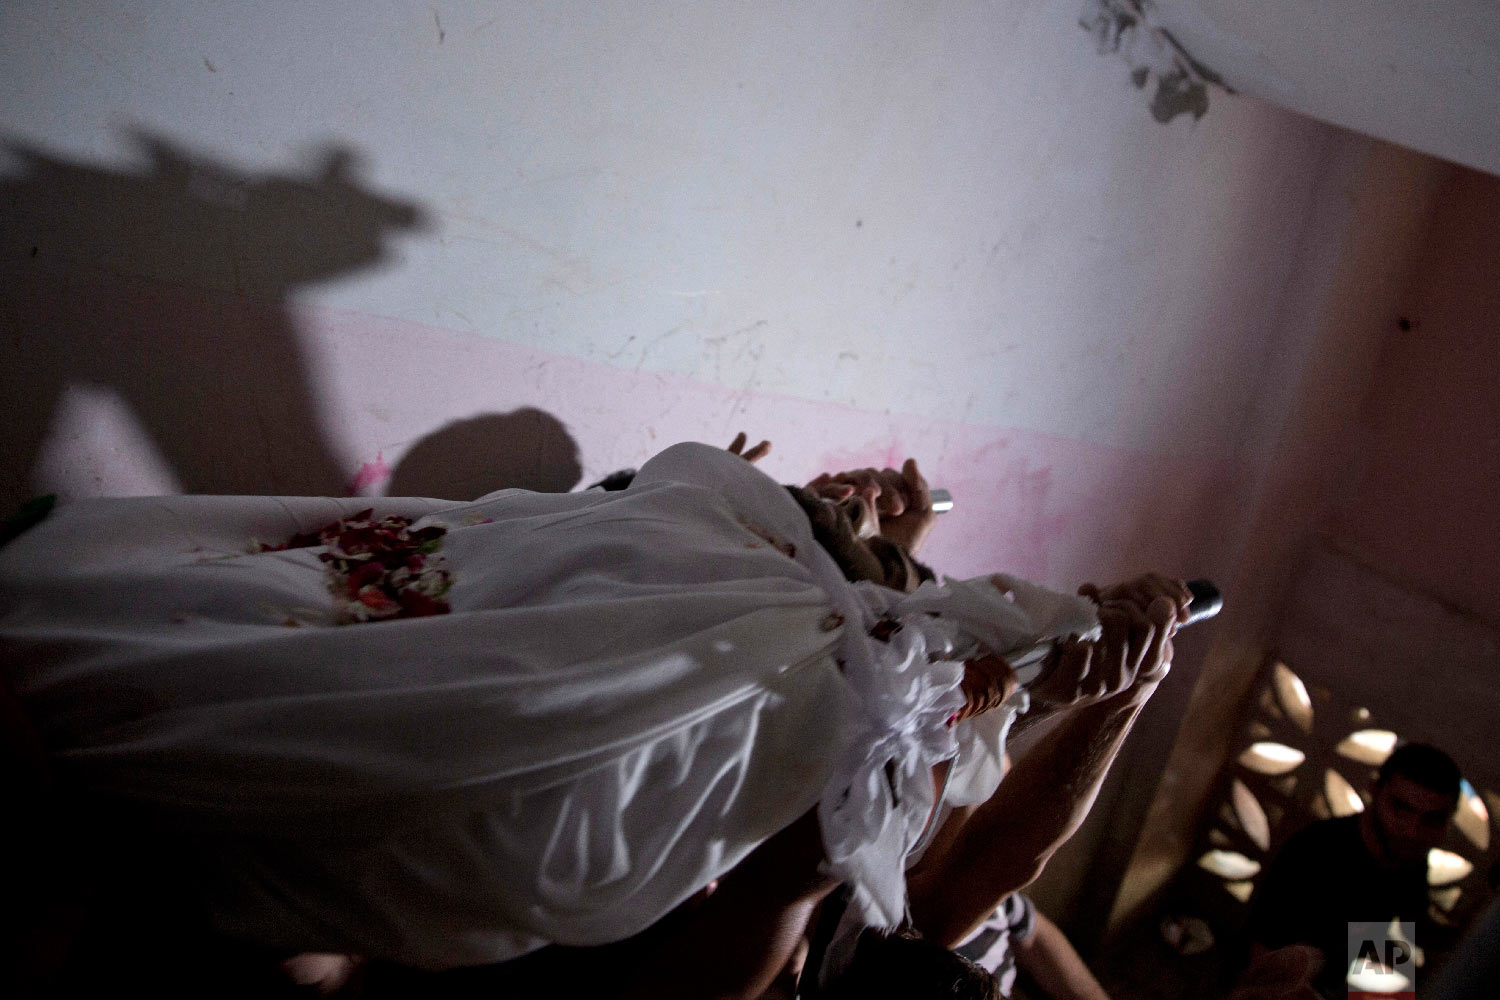 Mourners carry the body of Palestinian Muhammed al-Sadiq, 21, out of the family home during his funeral in Gaza City, Sept. 25, 2018. (AP Photo/Khalil Hamra)